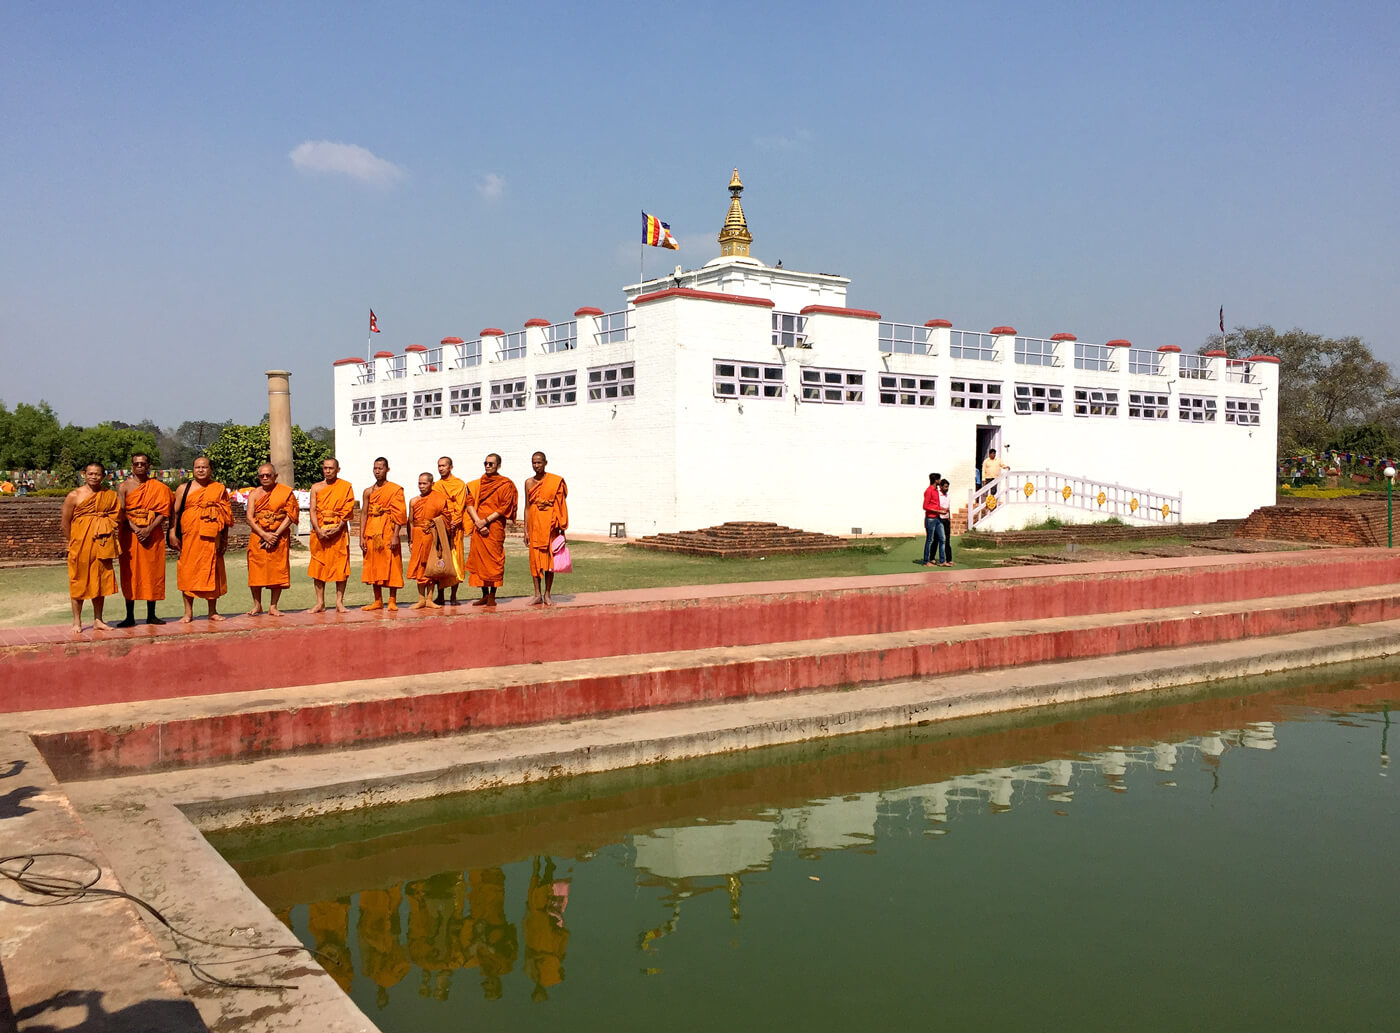 The Buddha was born in Lumbini